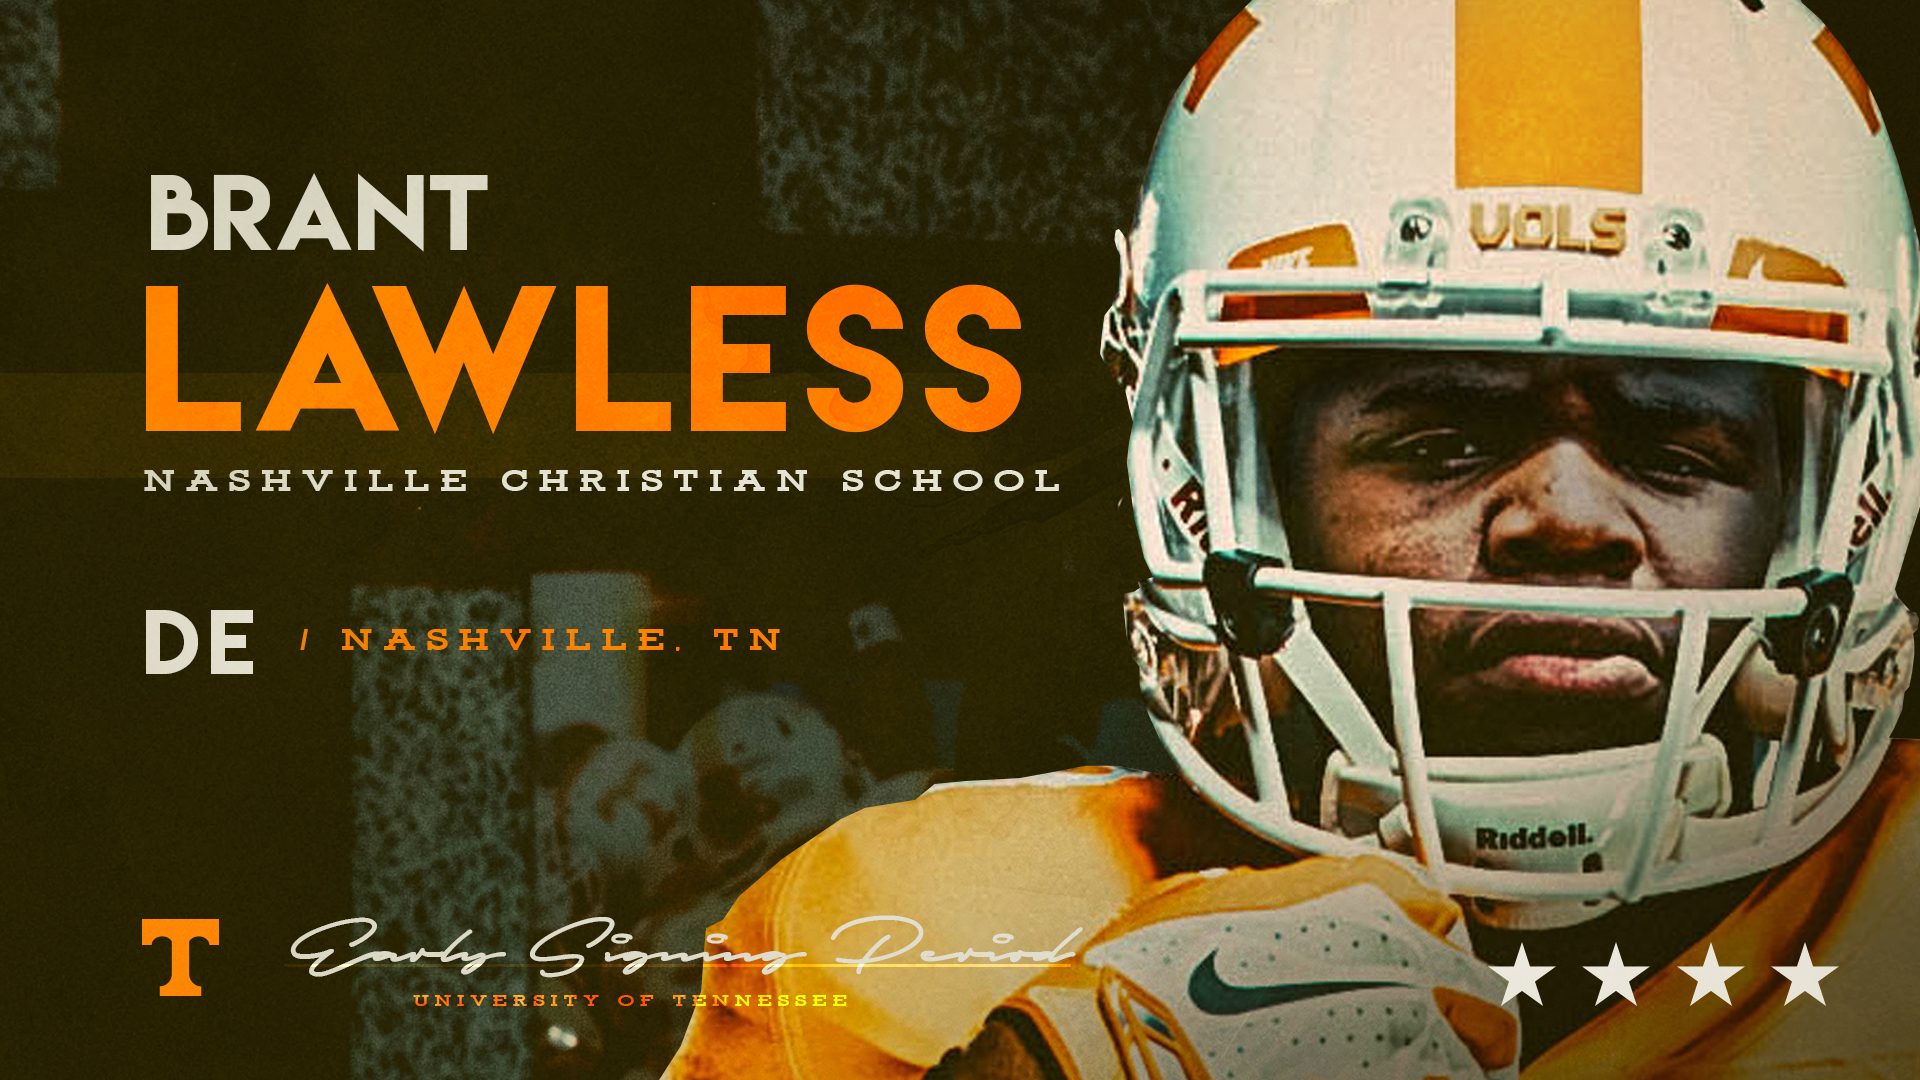 4-star DE Brant Lawless of Nashville is 9th to sign with UT